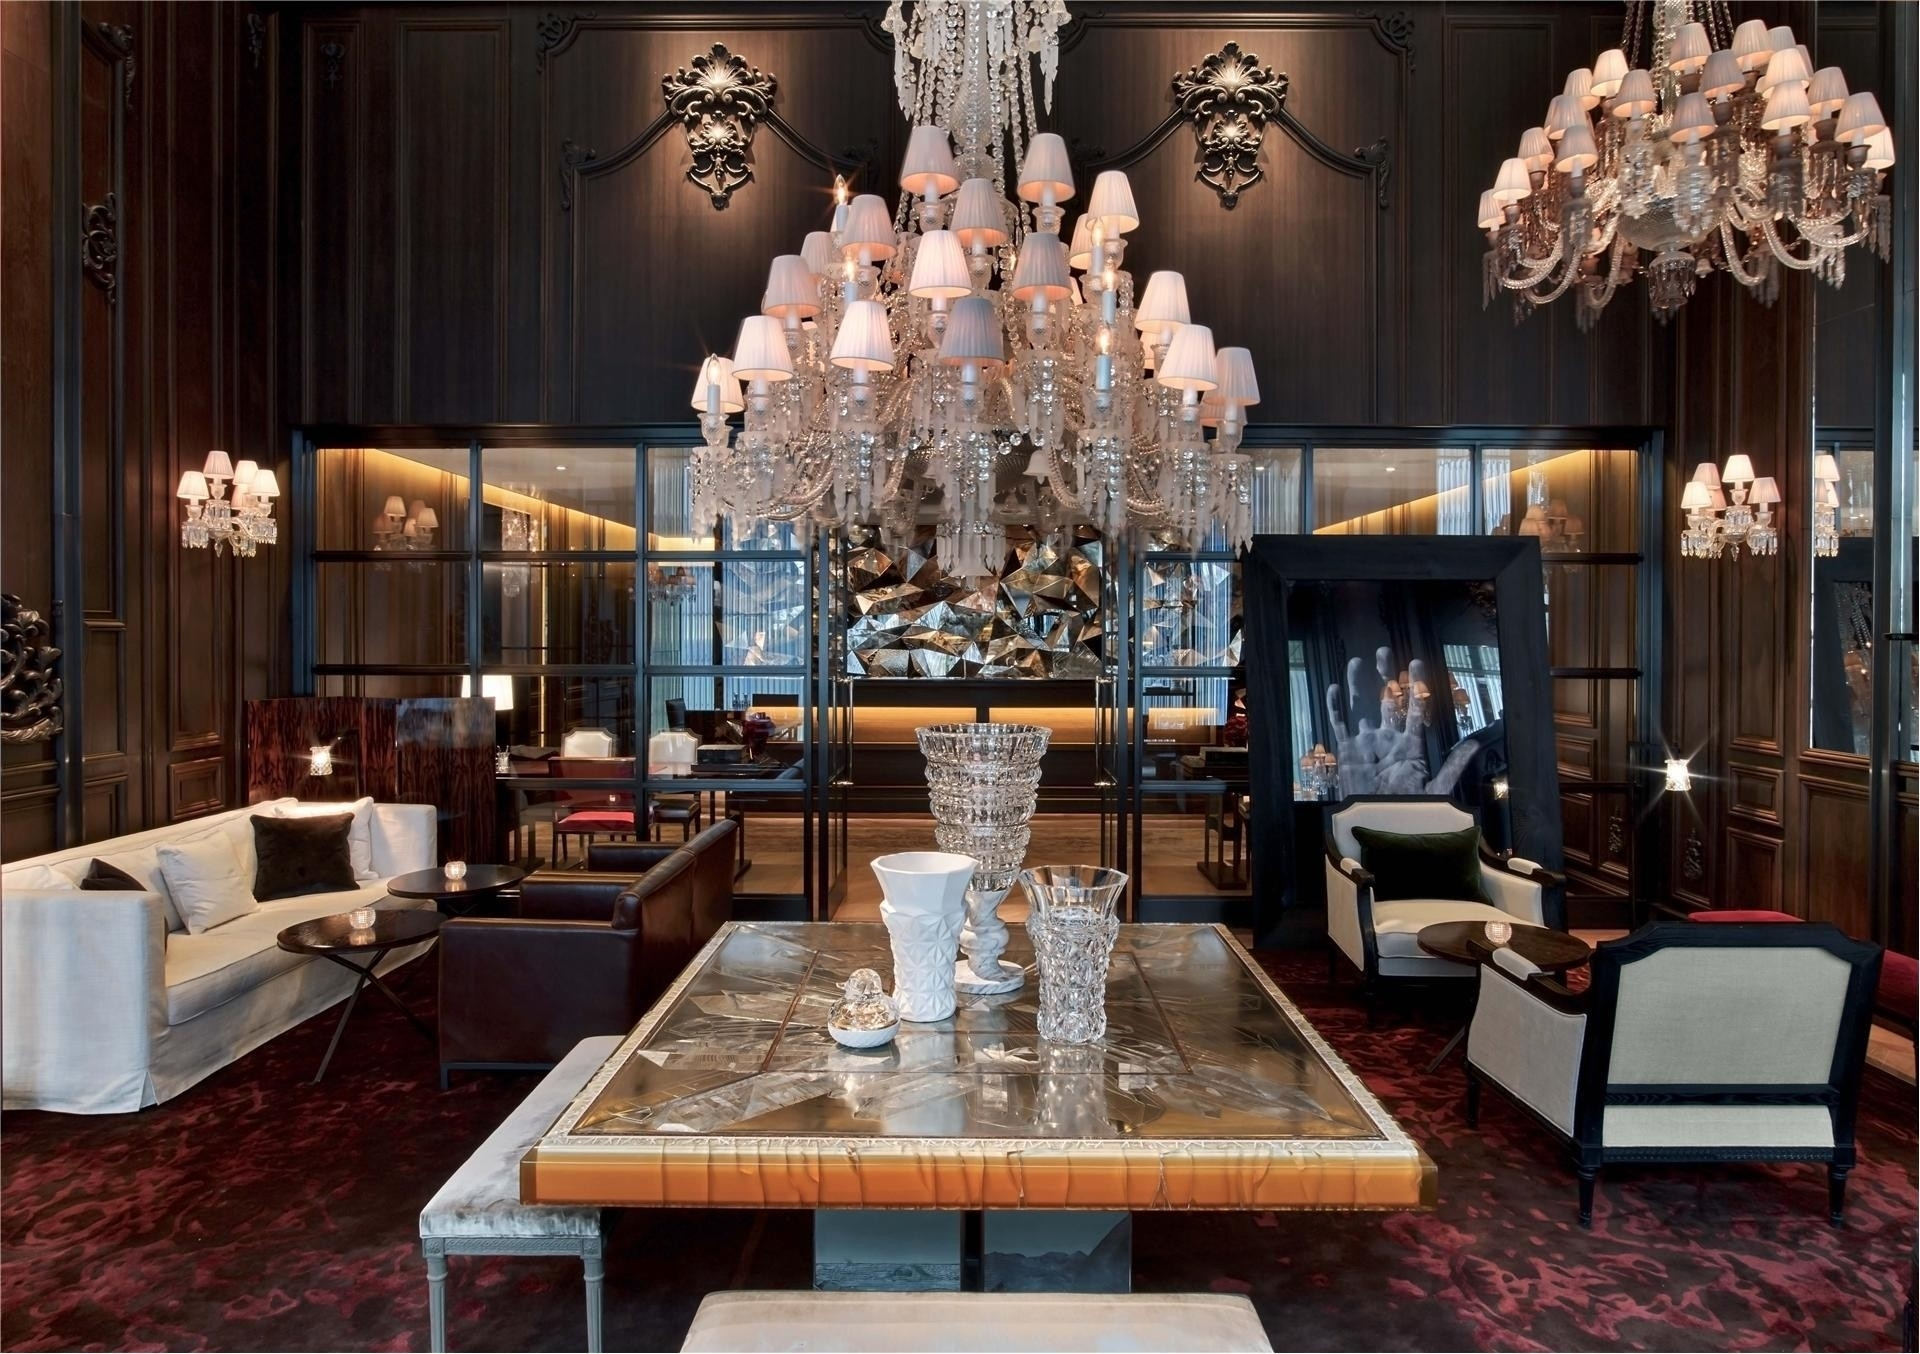 19. Condominiums for Sale at Baccarat Hotel And Residences, 20 W 53RD ST , PH48/49 Midtown West, New York, NY 10103